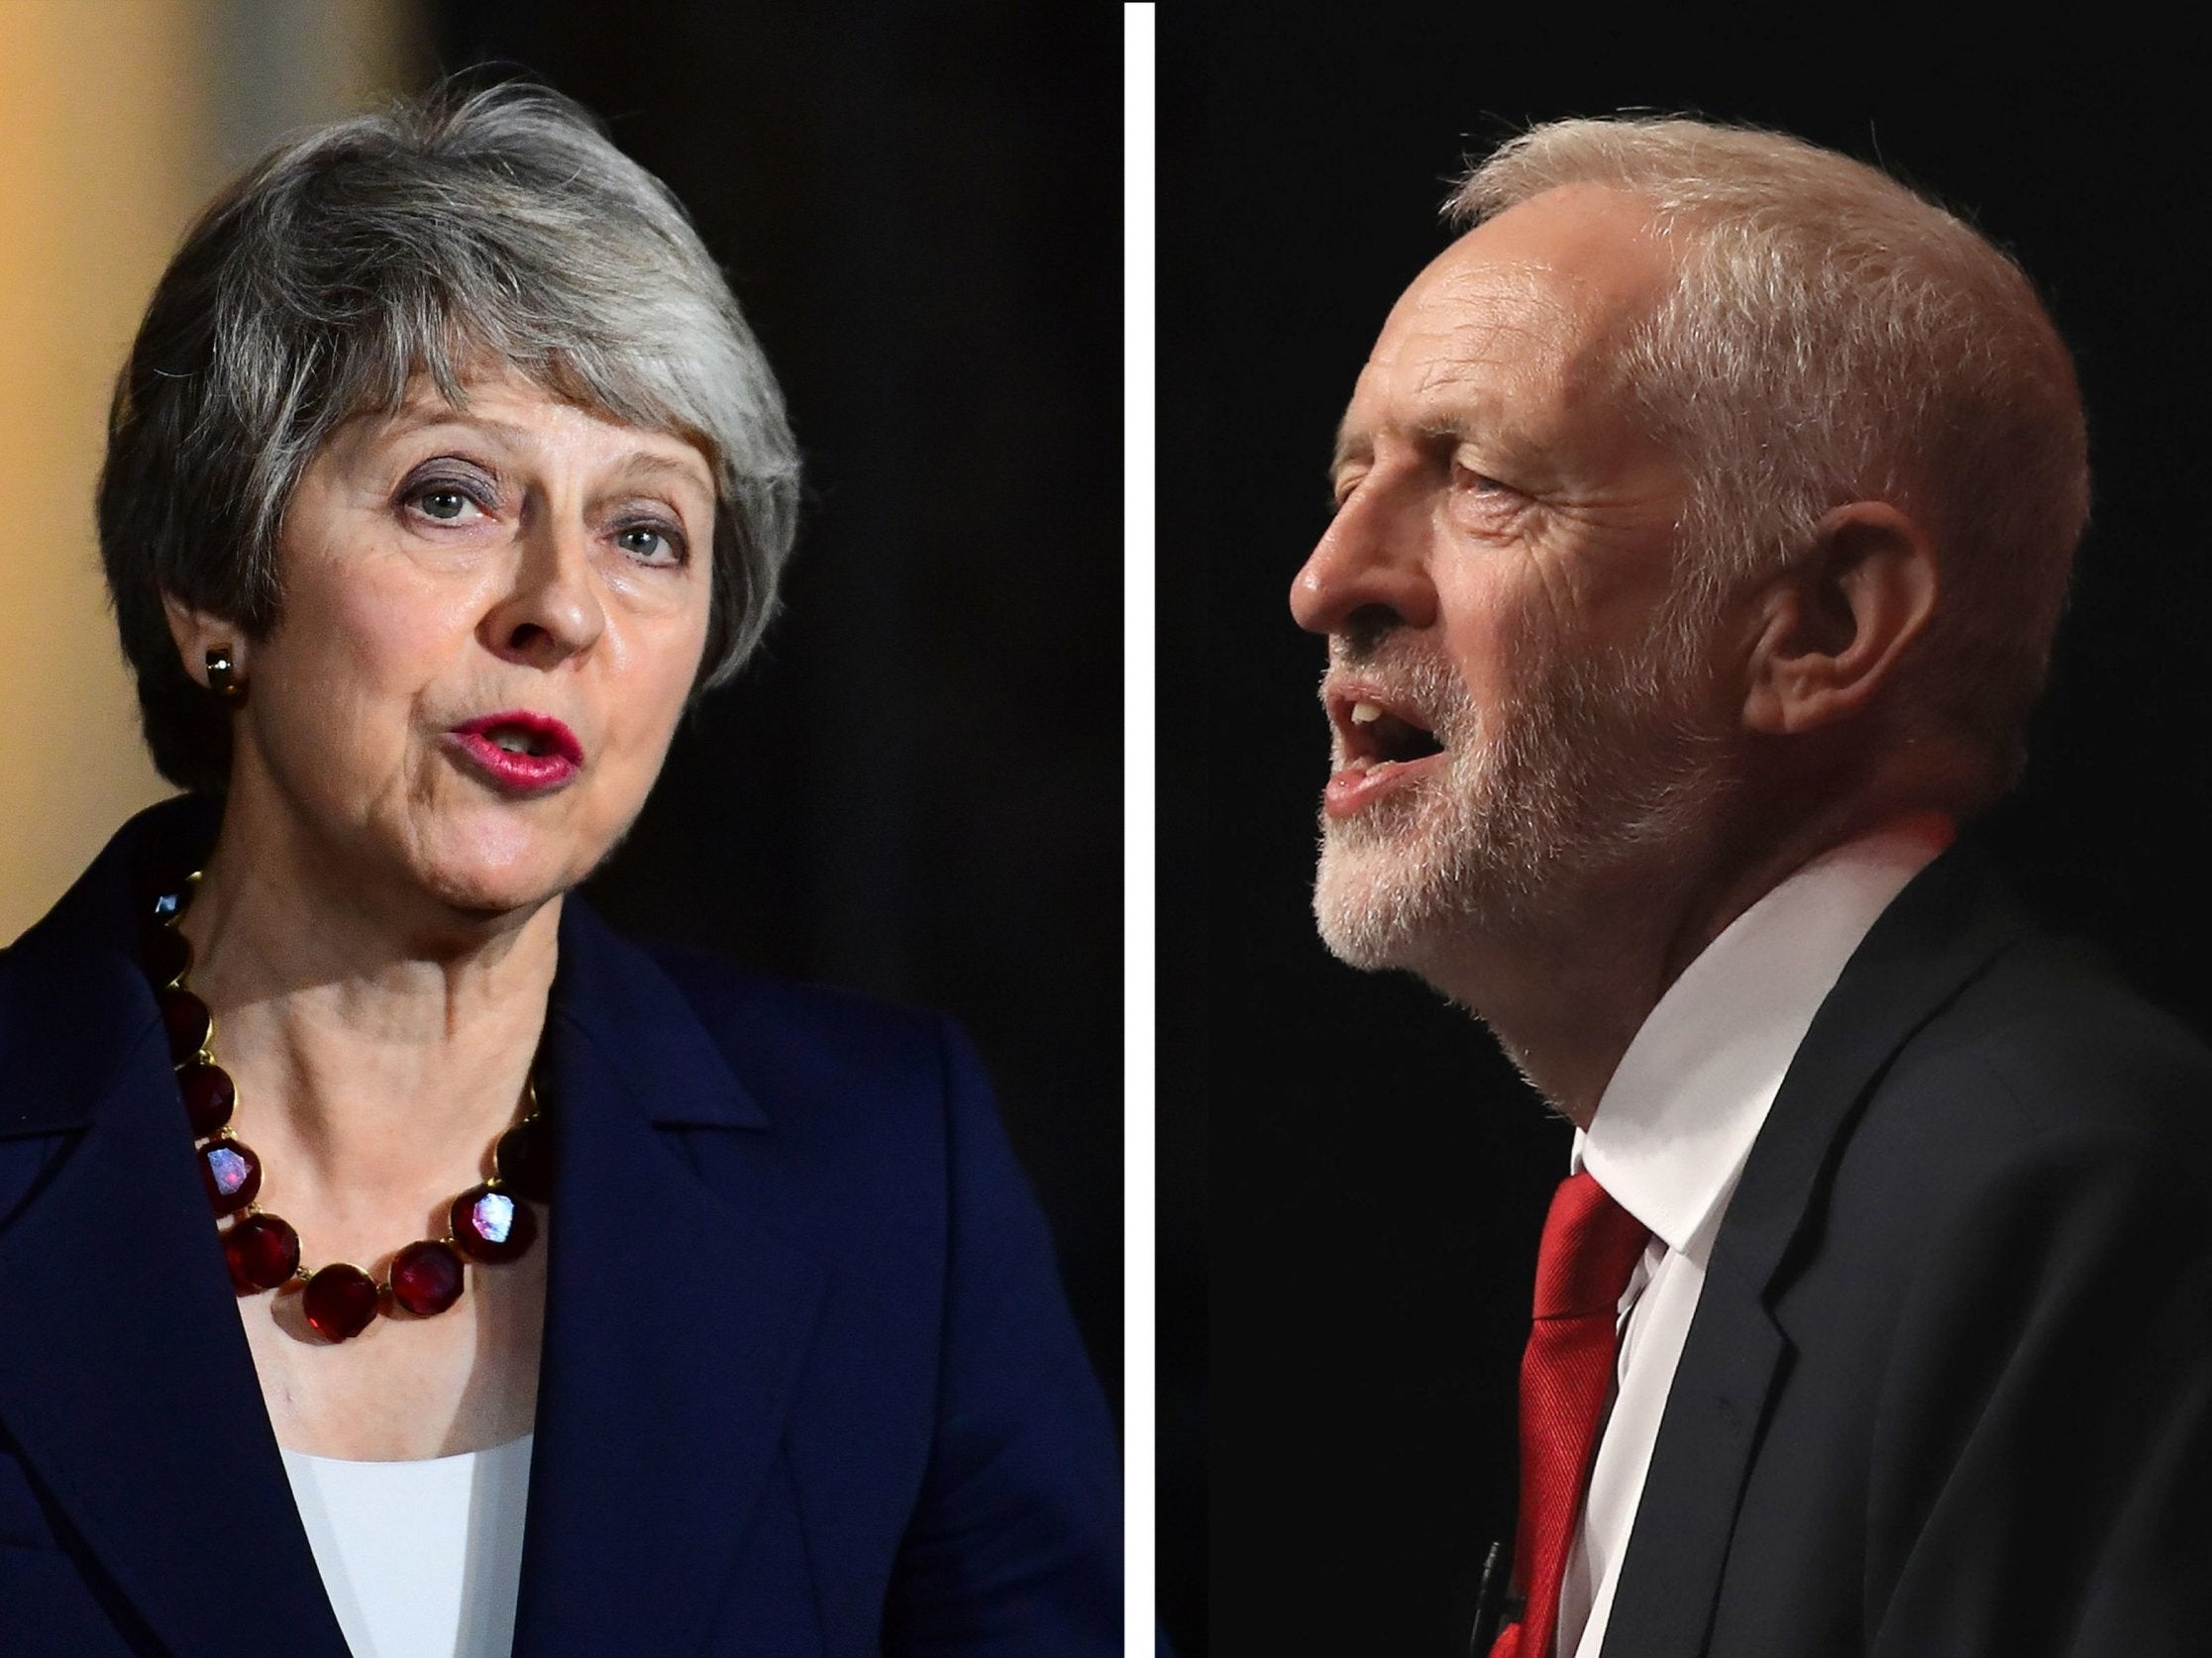 Brexit: ITV Cancels Plans for a Television Debate between Theresa May and Jeremy Corbyn - The Independent